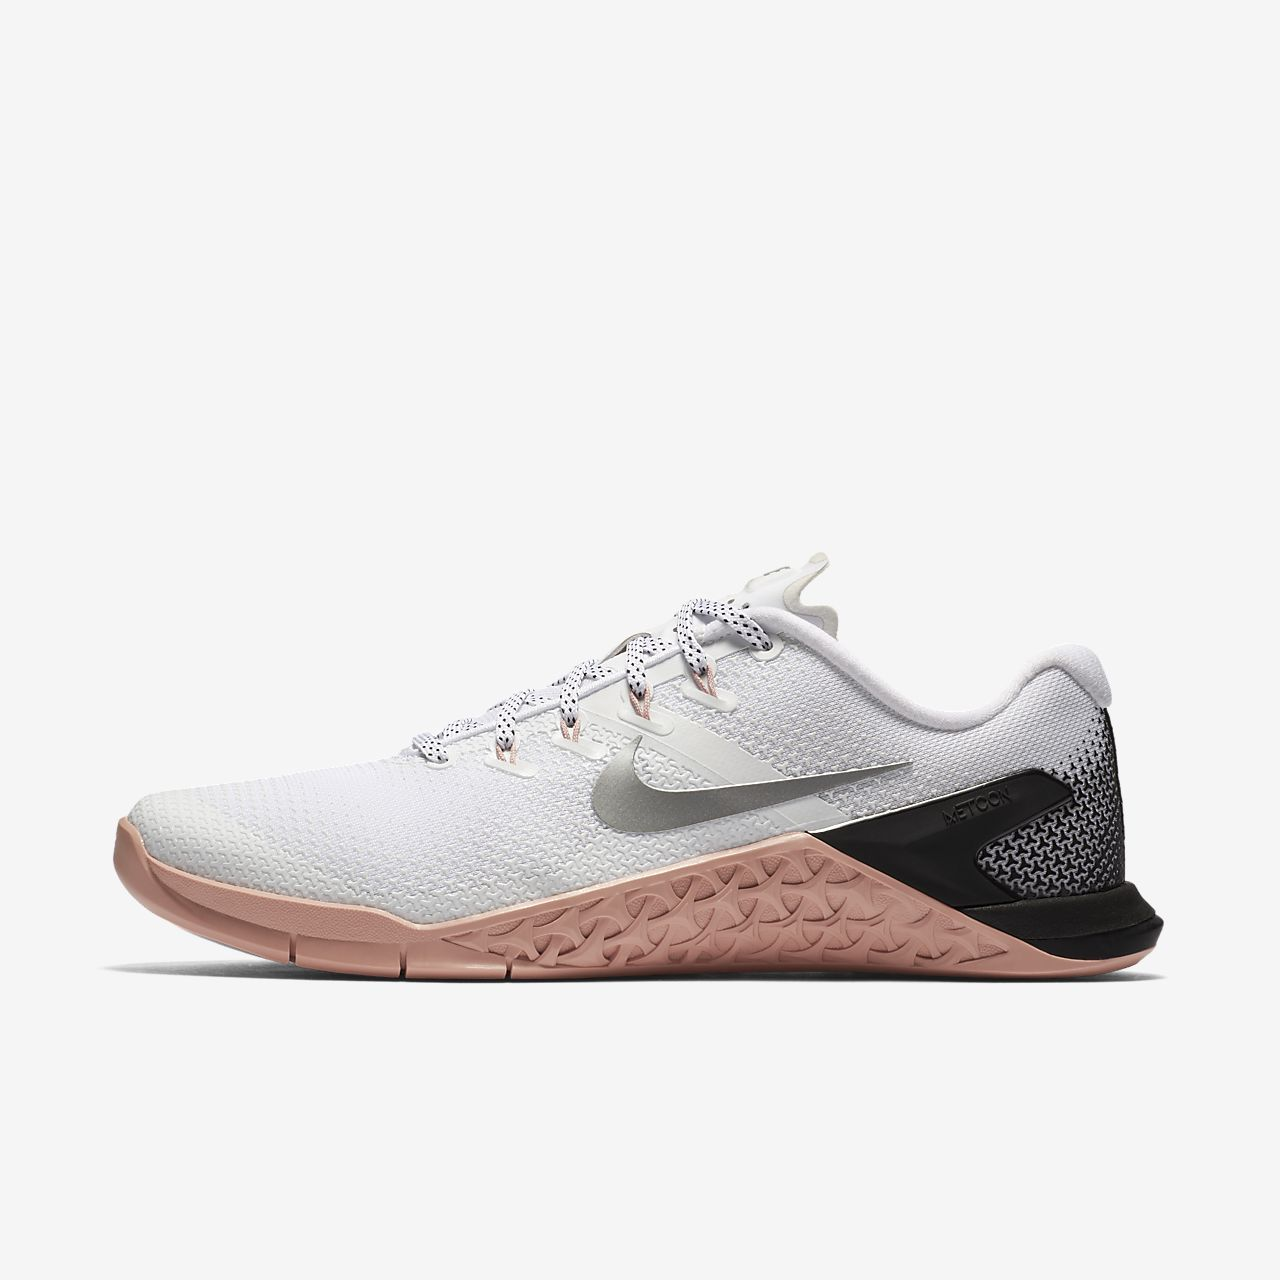 fdca5902c860f Nike Metcon 4 Women s Training Shoe